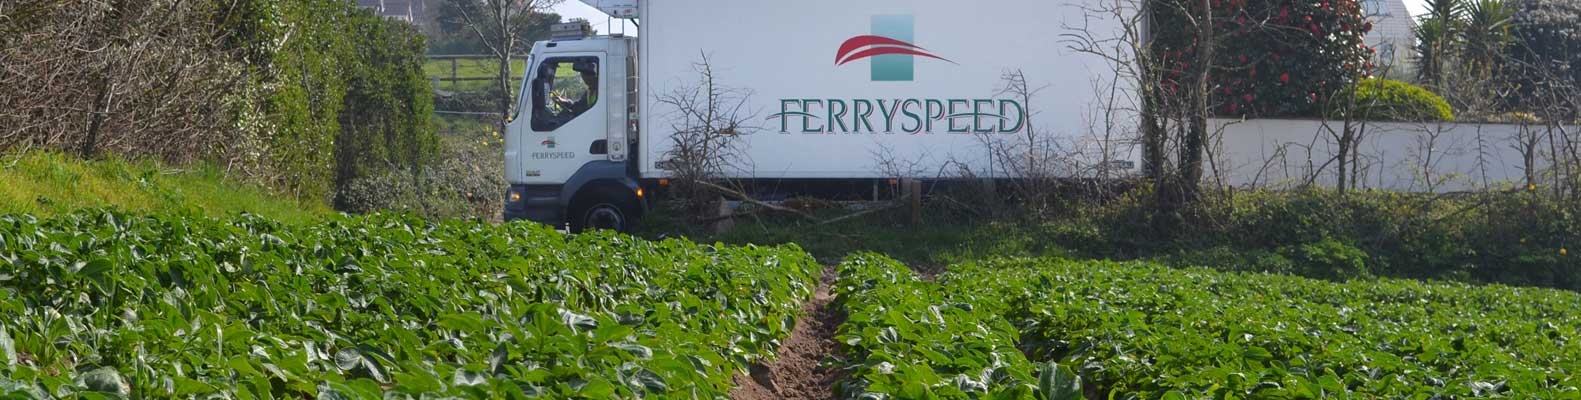 Horticultural freight services